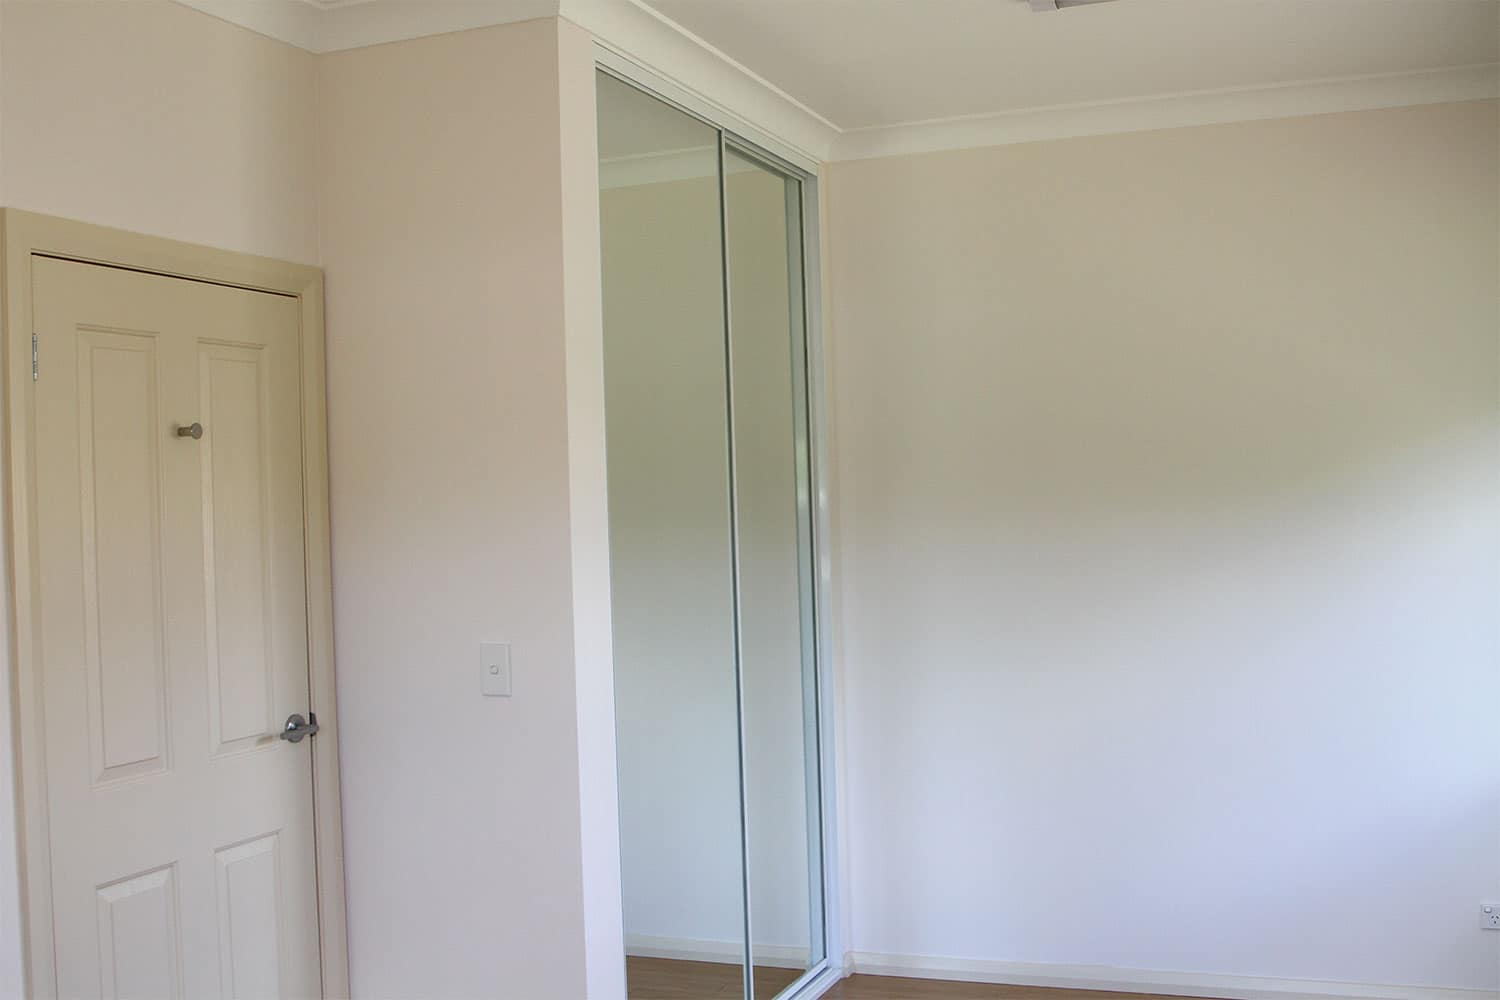 Commercial Grade Stylish Built-In Wardrobes